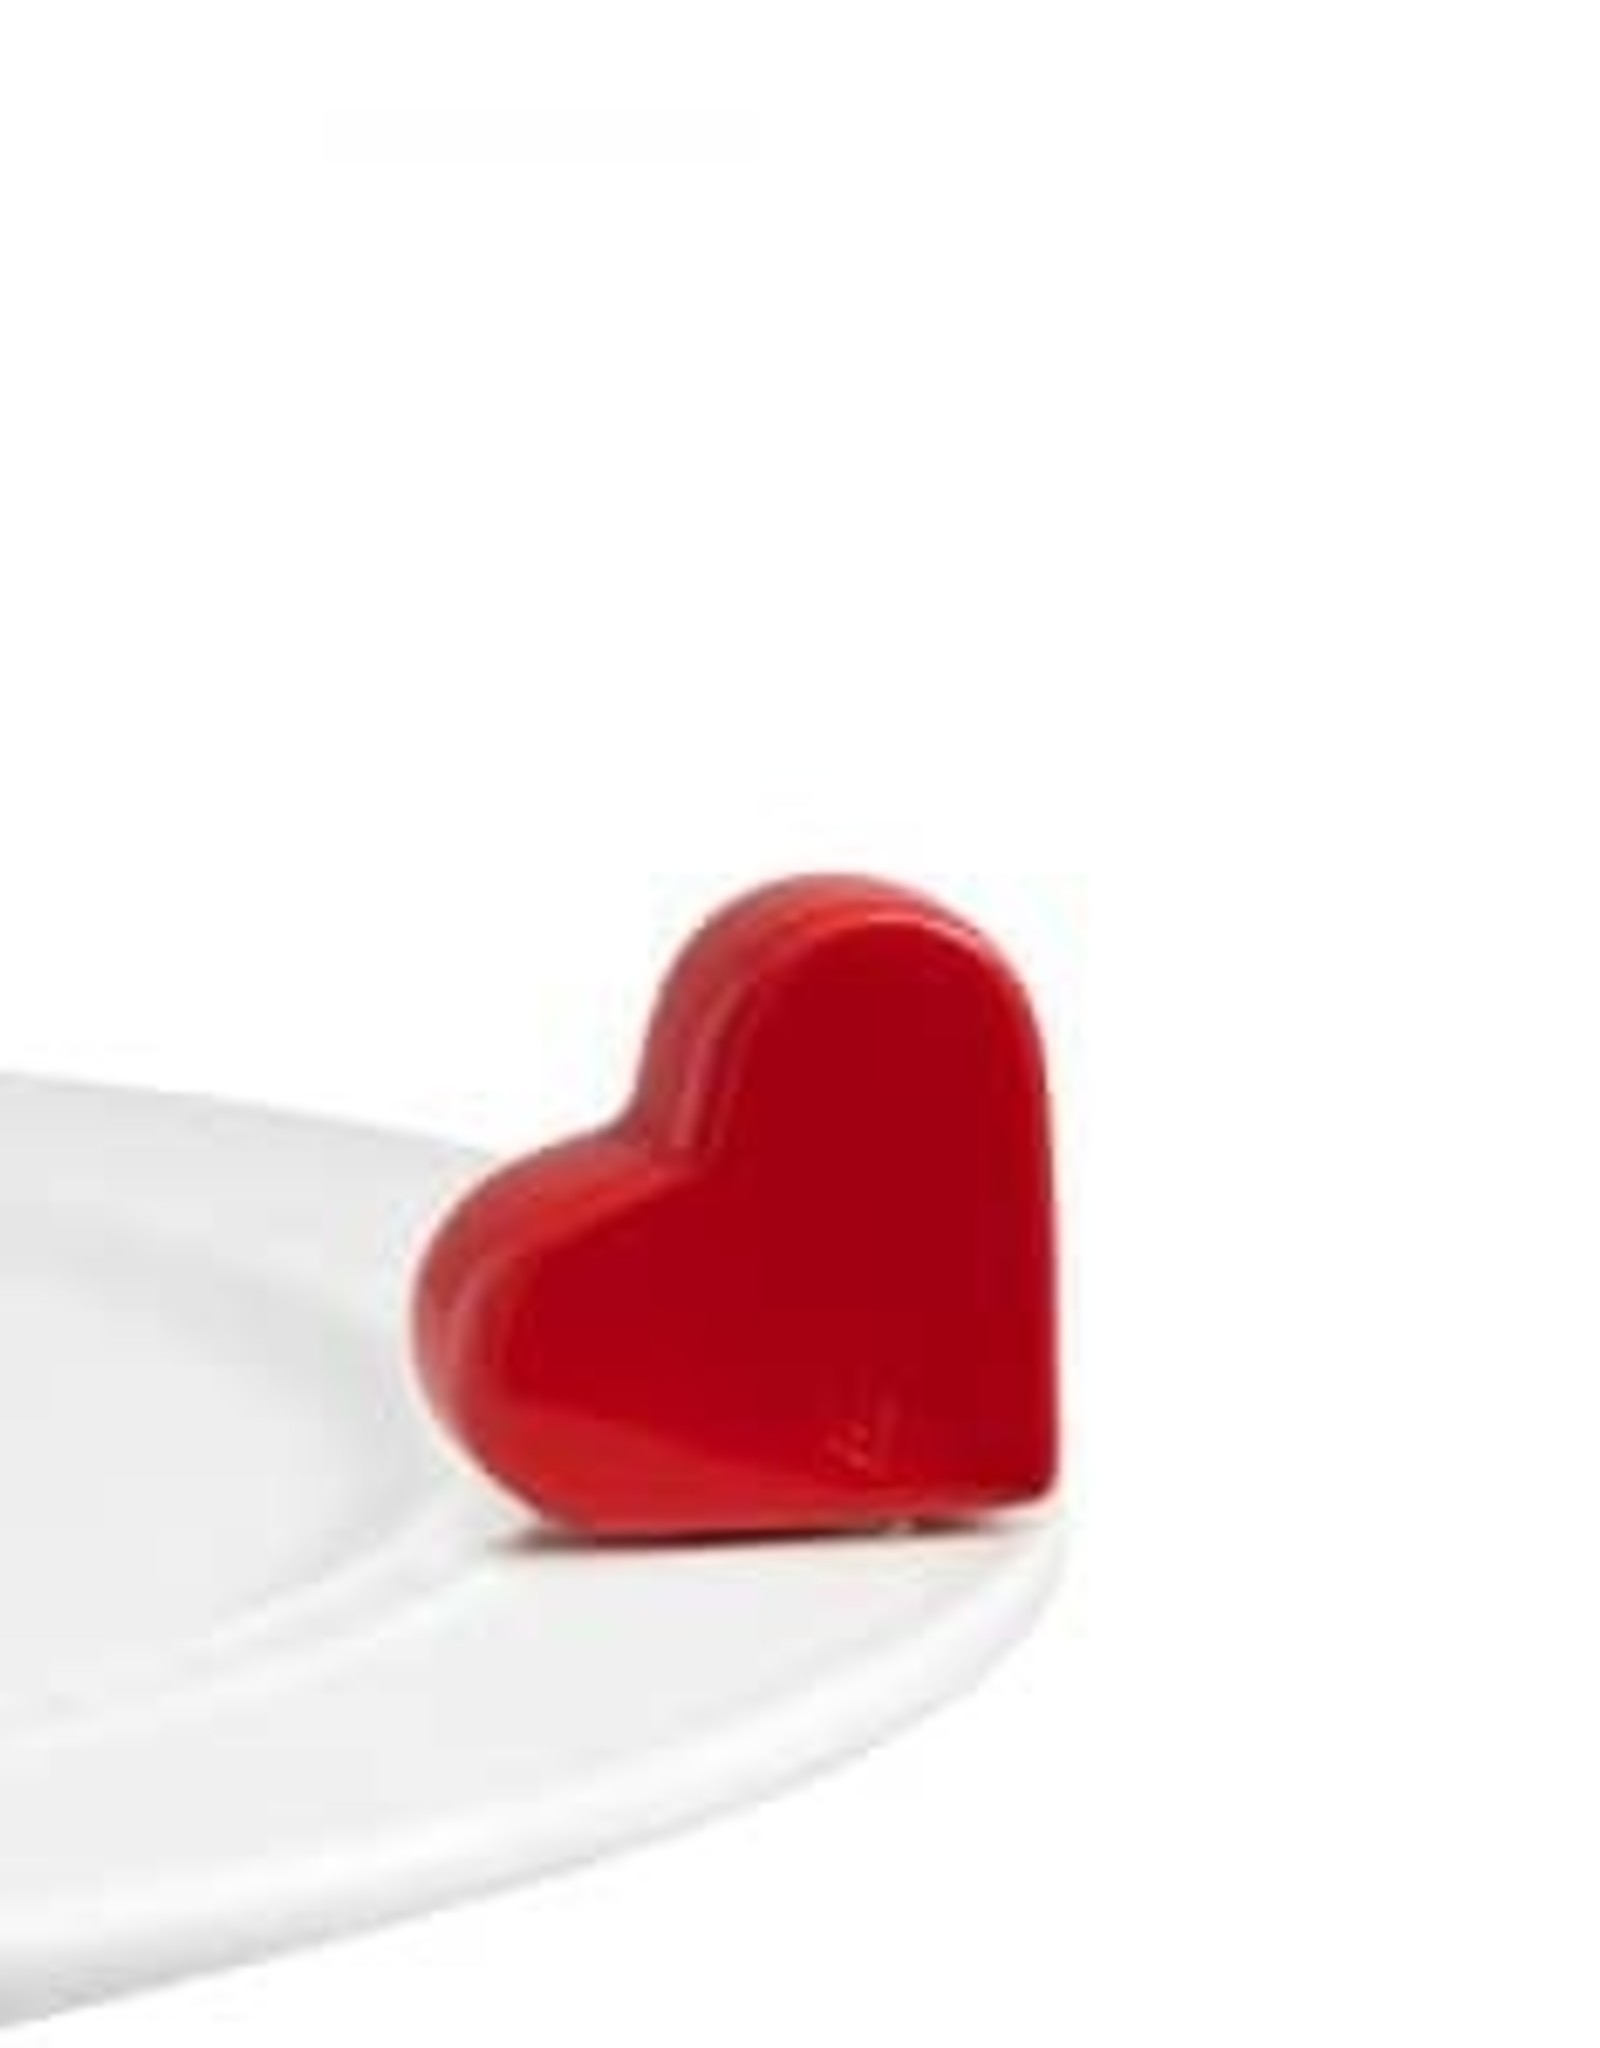 Nora Fleming be mine (red heart)